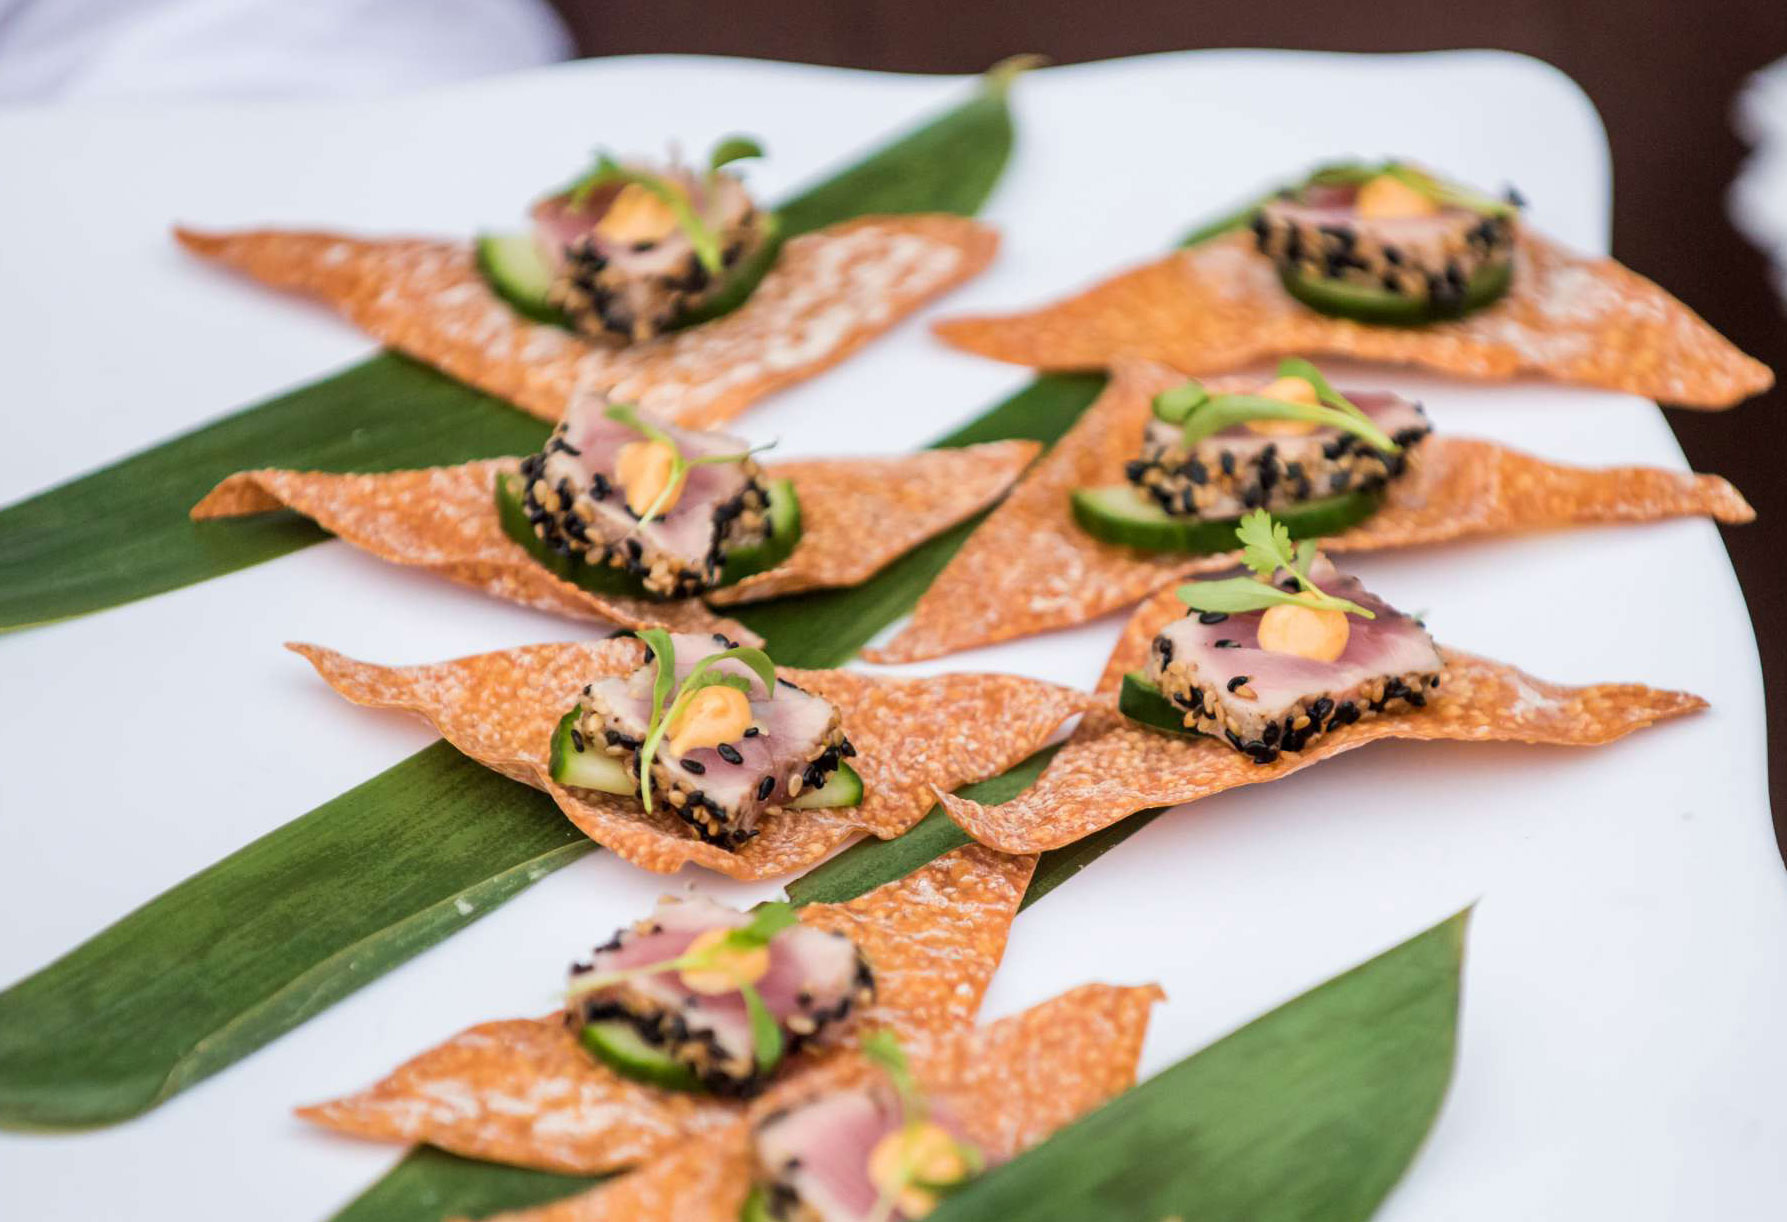 Appetizers with tuna